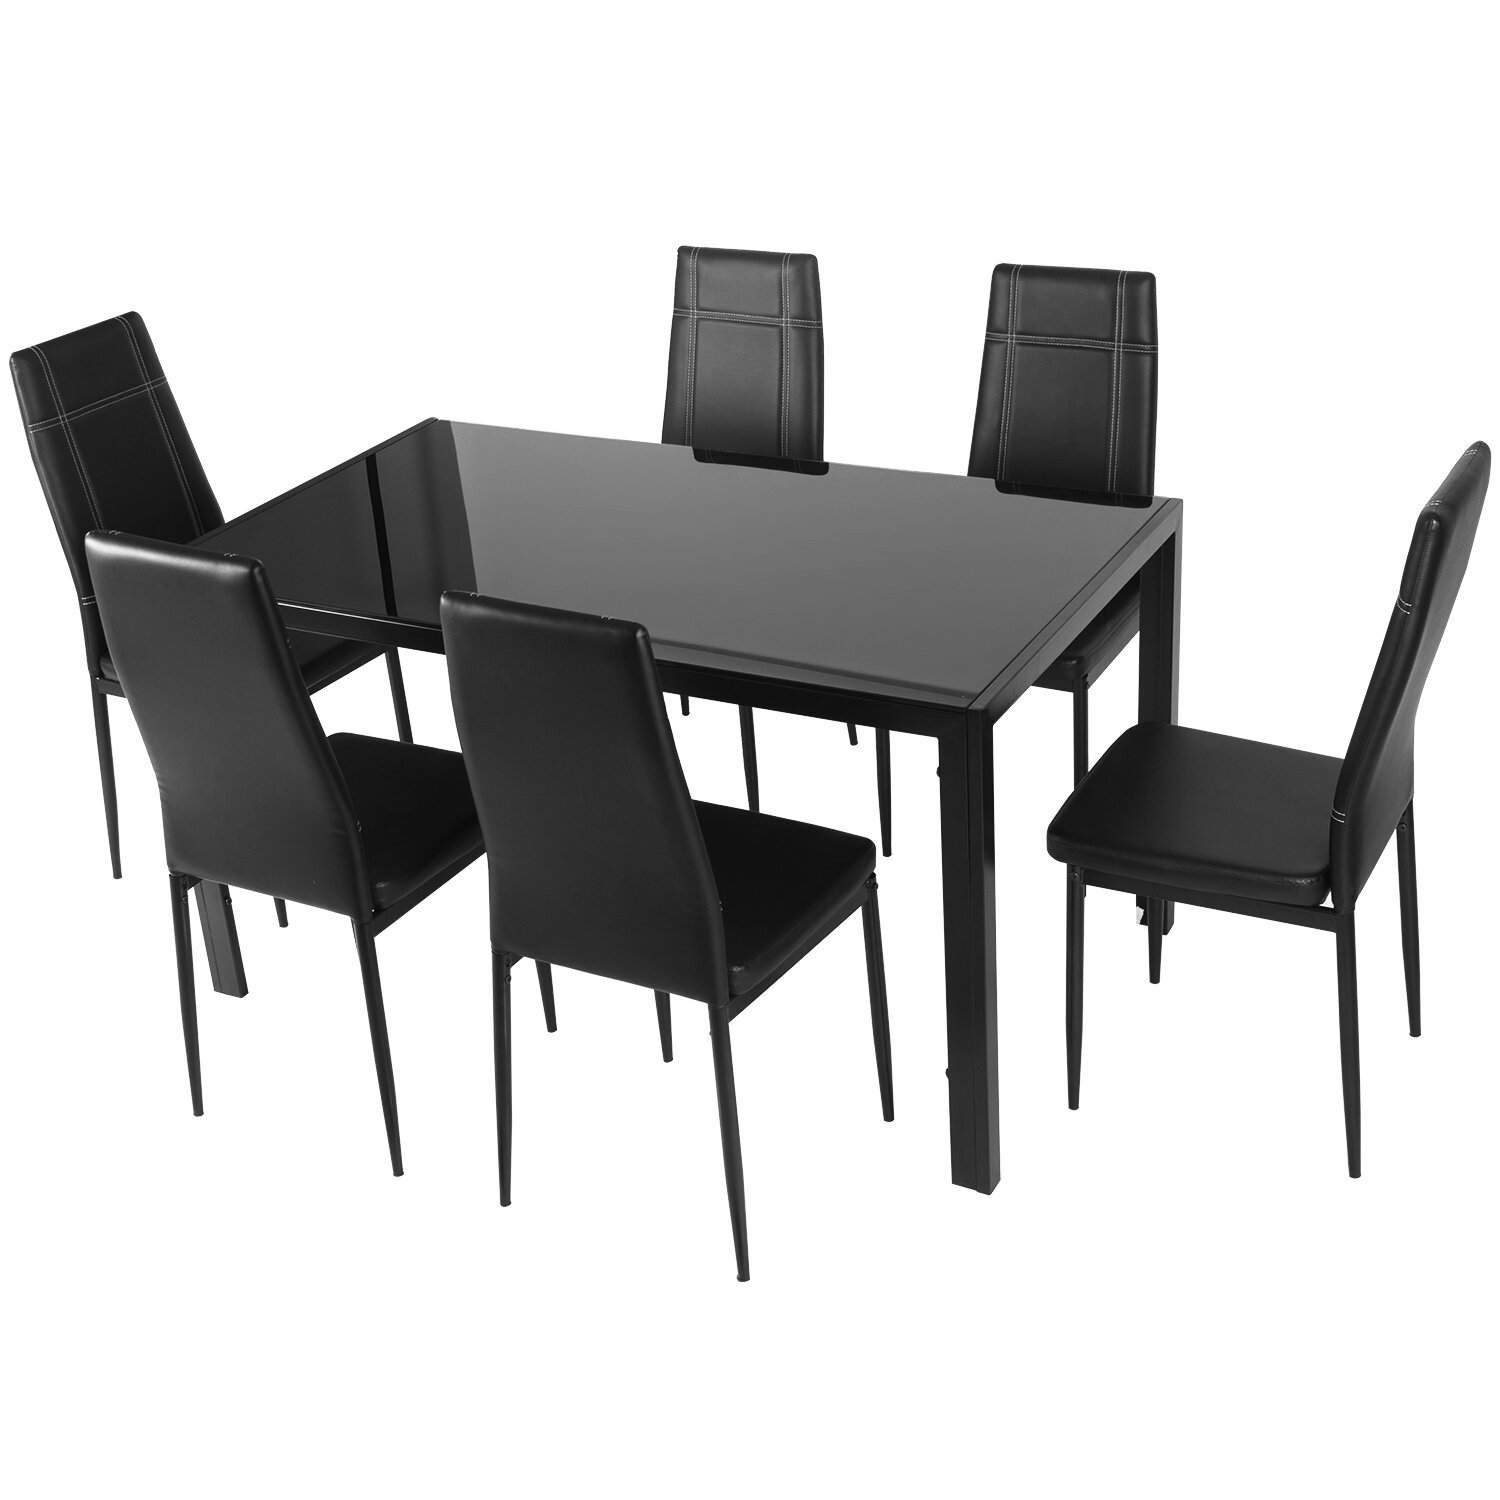 Maynard 7 Piece Dining Set